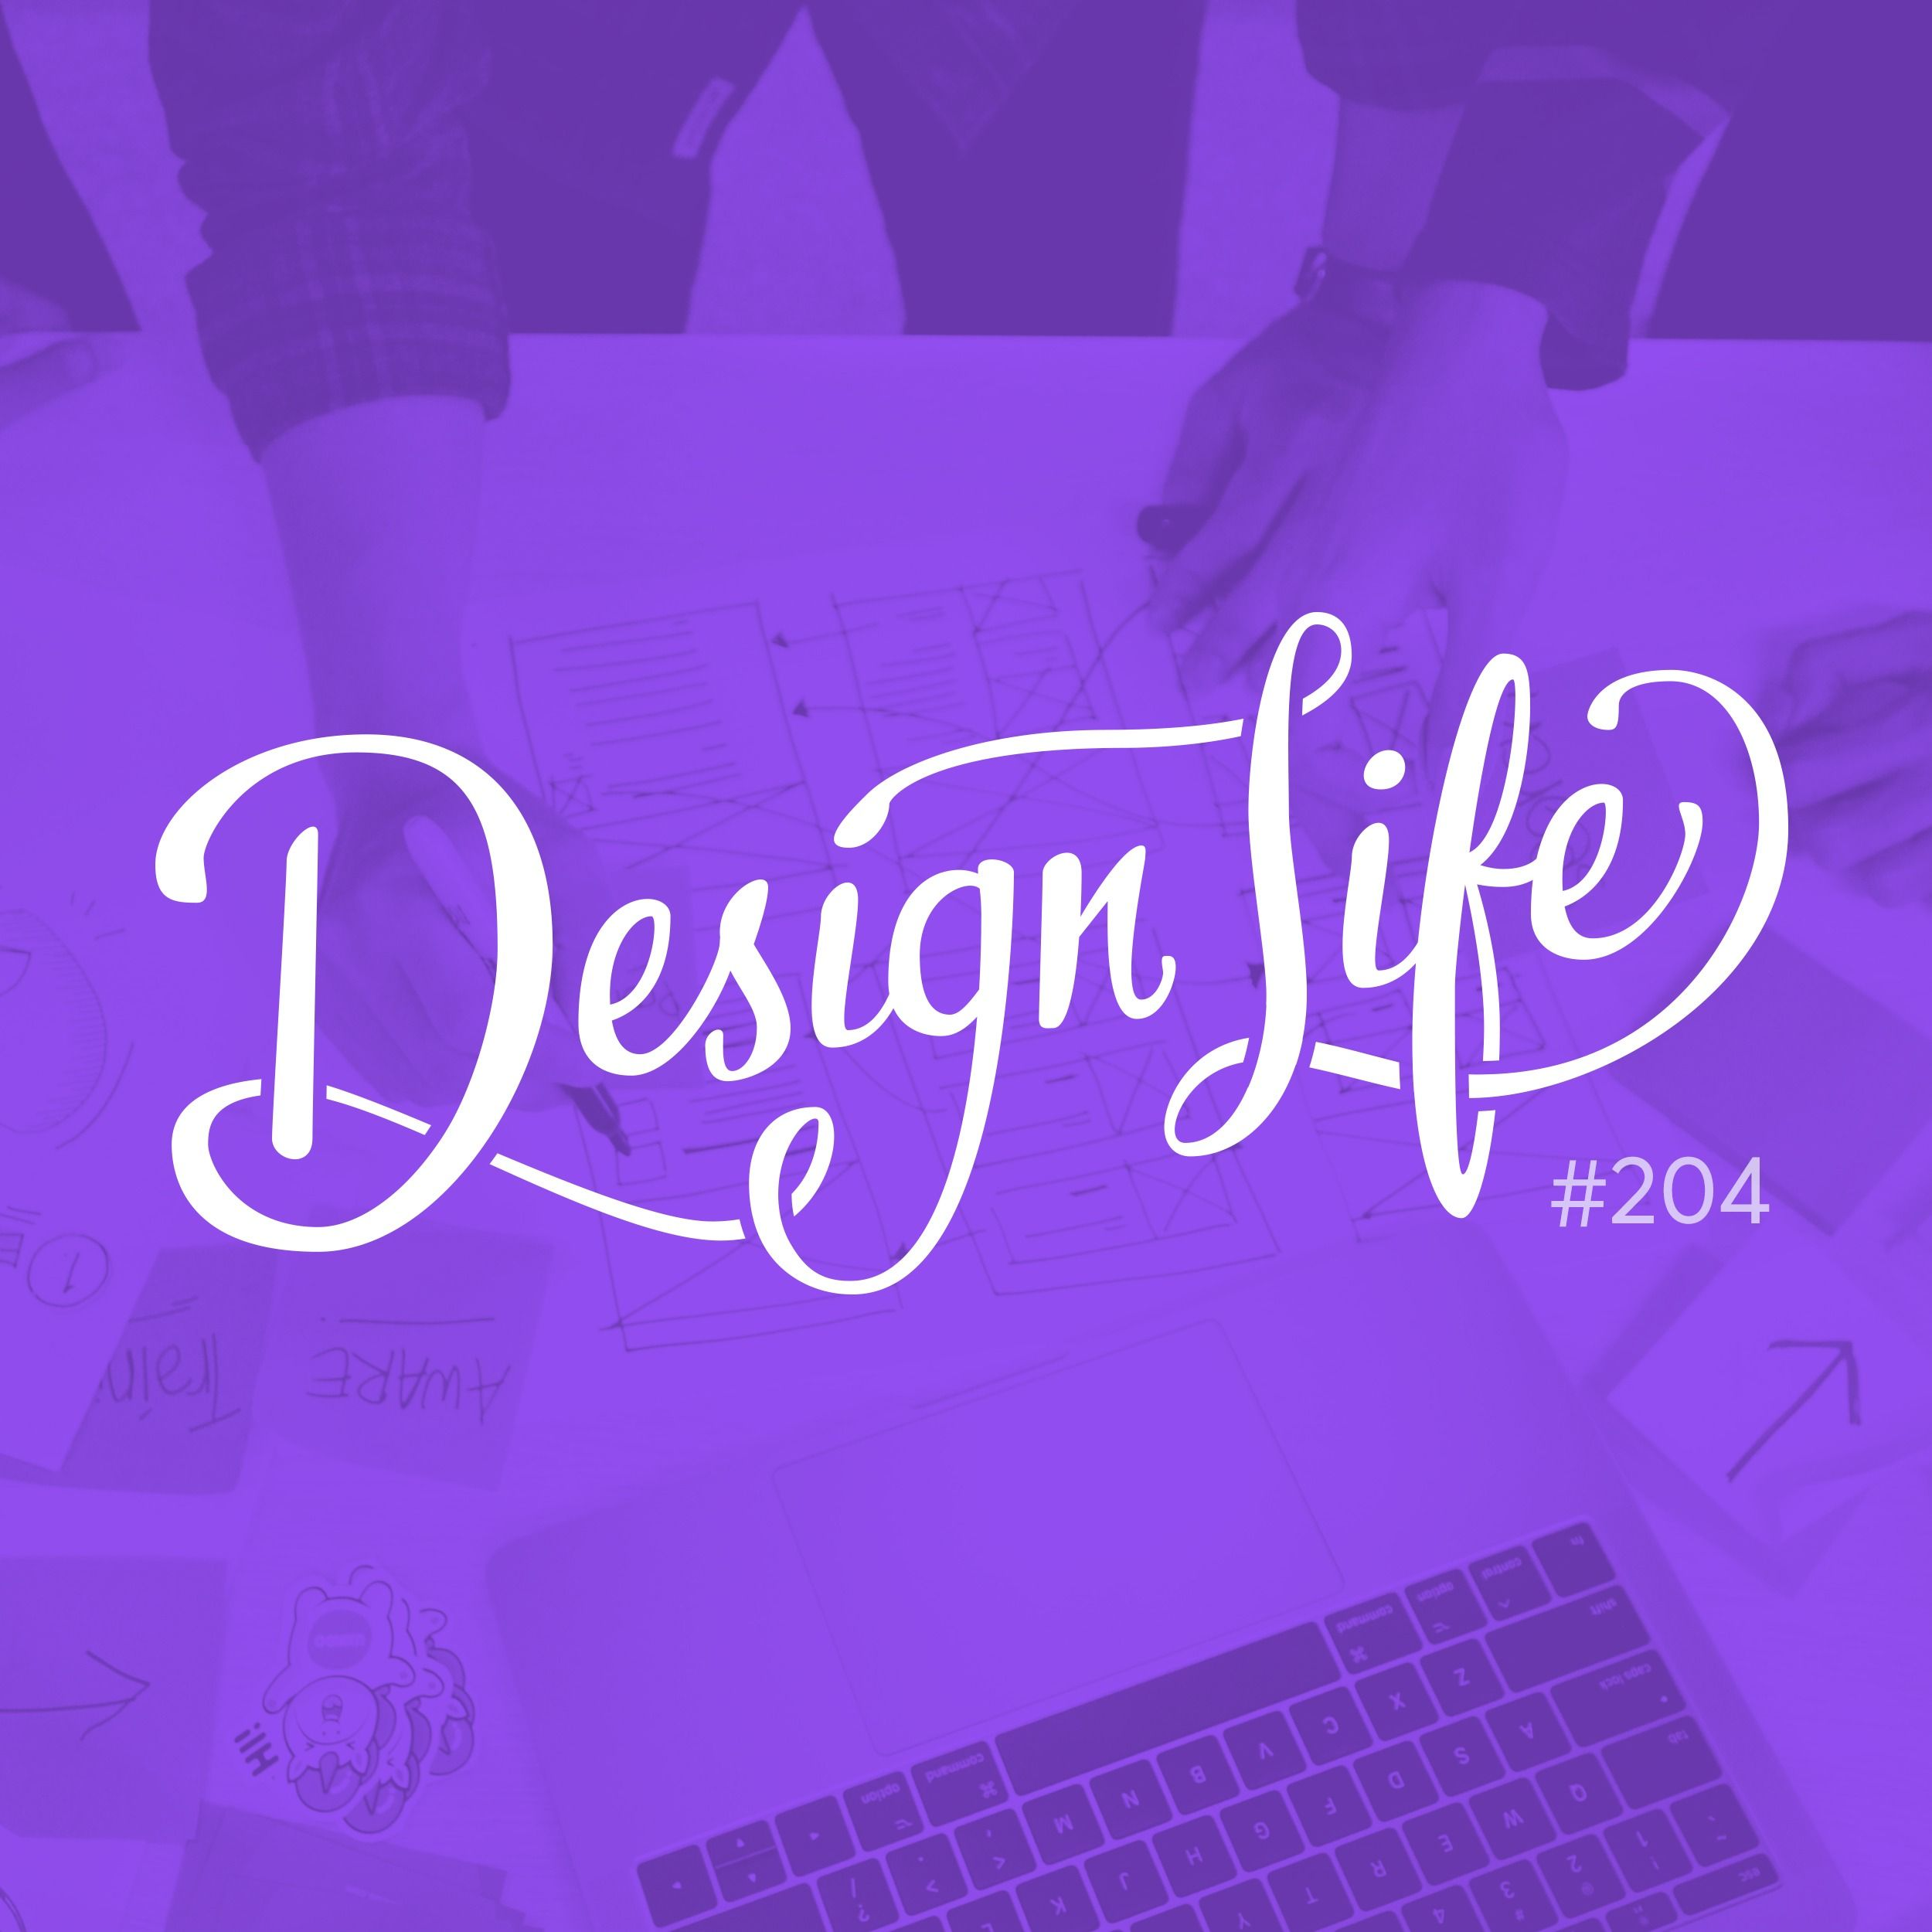 204: Speeding up the design process